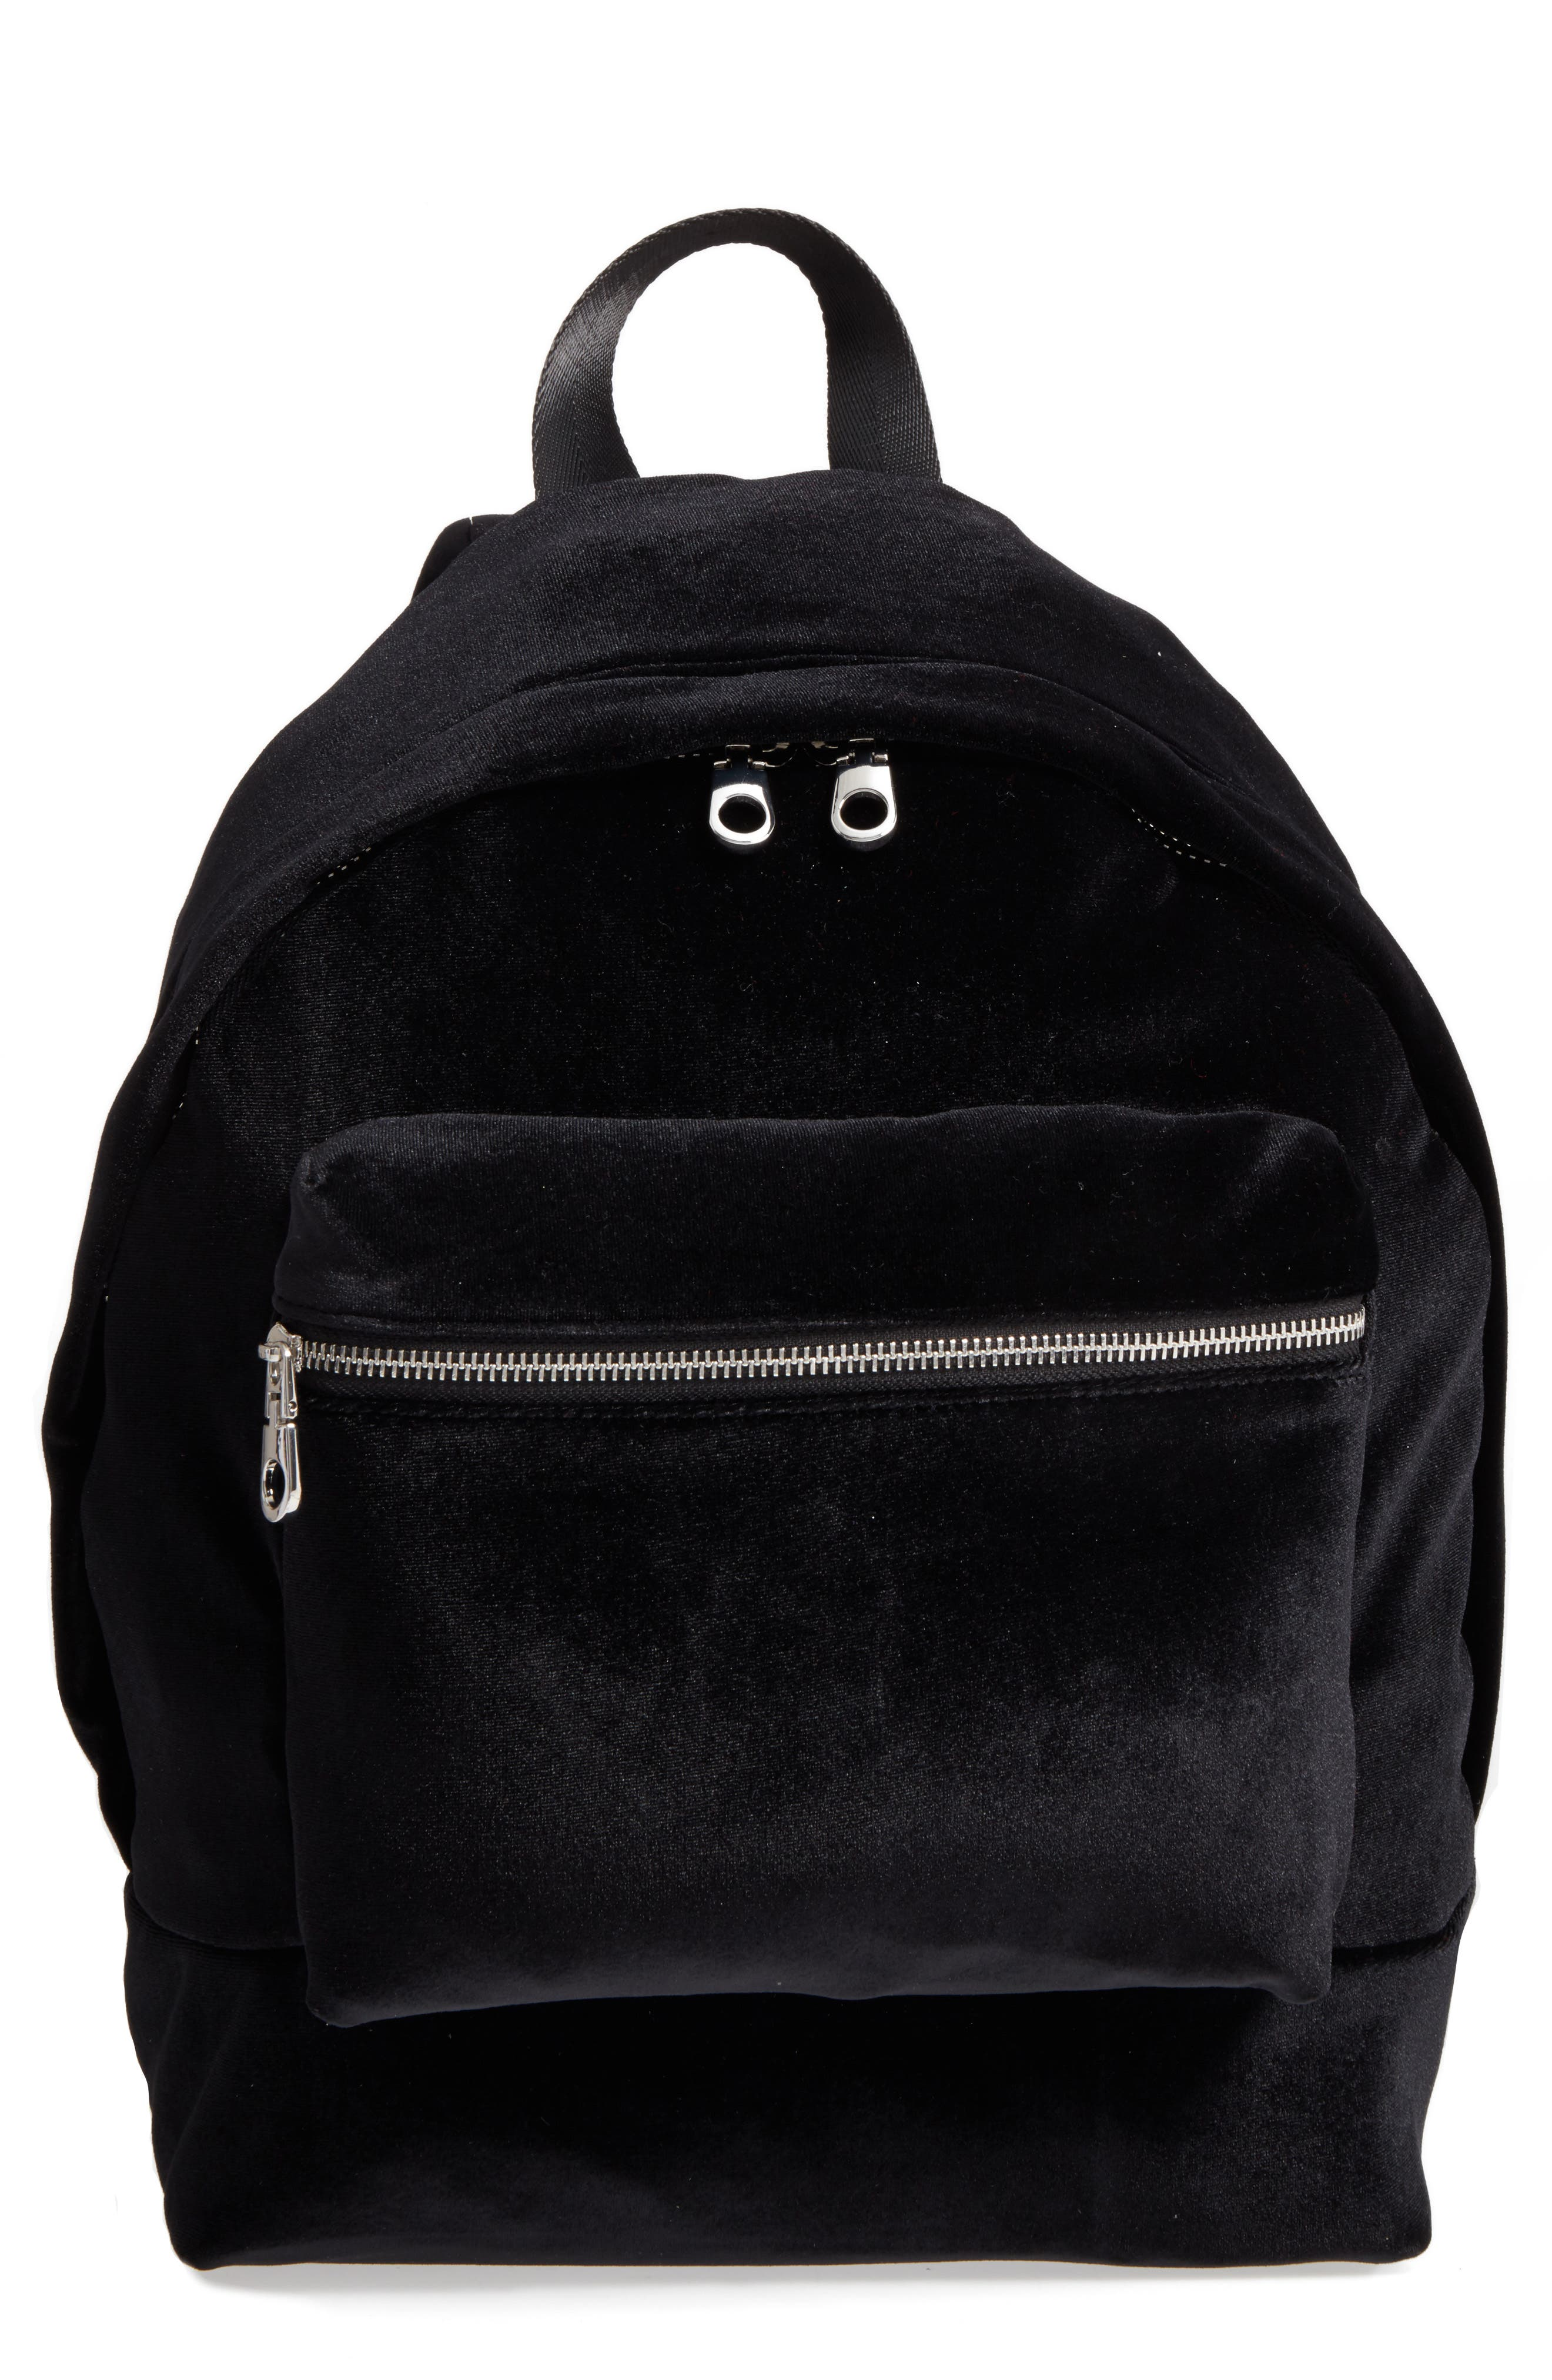 Velvet Backpack,                             Main thumbnail 1, color,                             Black